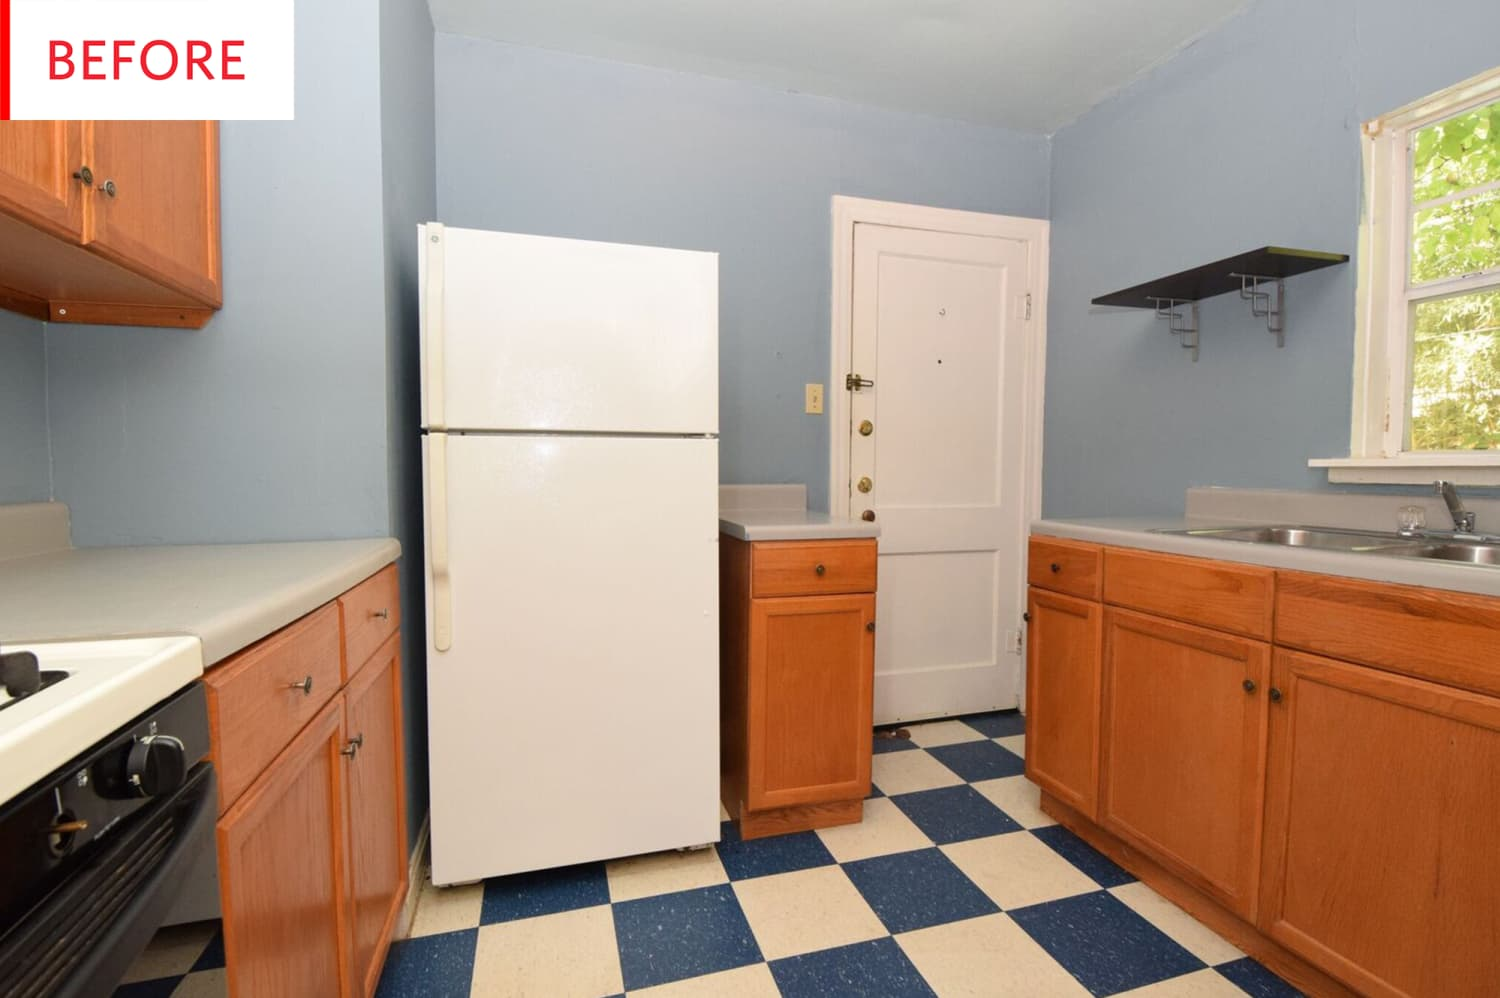 Before and After: $500 Later, It's Really Hard to Believe This Is the Same Kitchen